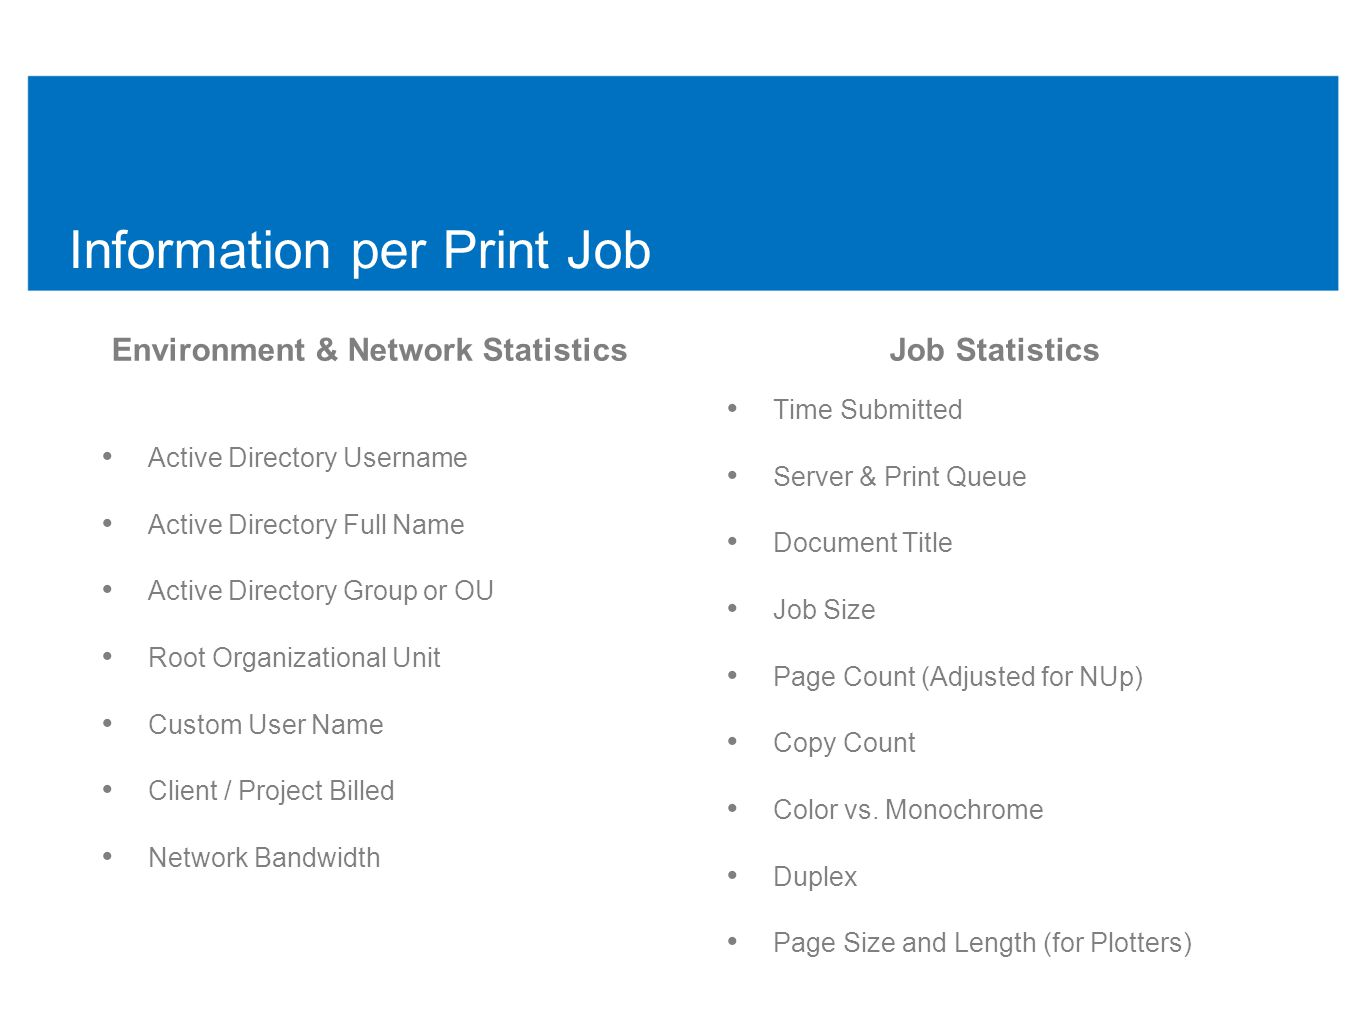 7 Common Print Manager Plus Setup Type Print Manager Plus Setup Types  Single Stand Alone Print Server with a Local Database  Multiple Print Server's Sharing a single MSSQL Database  Multiple Print Servers, each using it own local Database  Single or Multiple Print Servers, sharing a Central SQL Database with Workstation Connected Printer Agents  Print Server and Workstation Connected Printers / Direct IP Printing 7